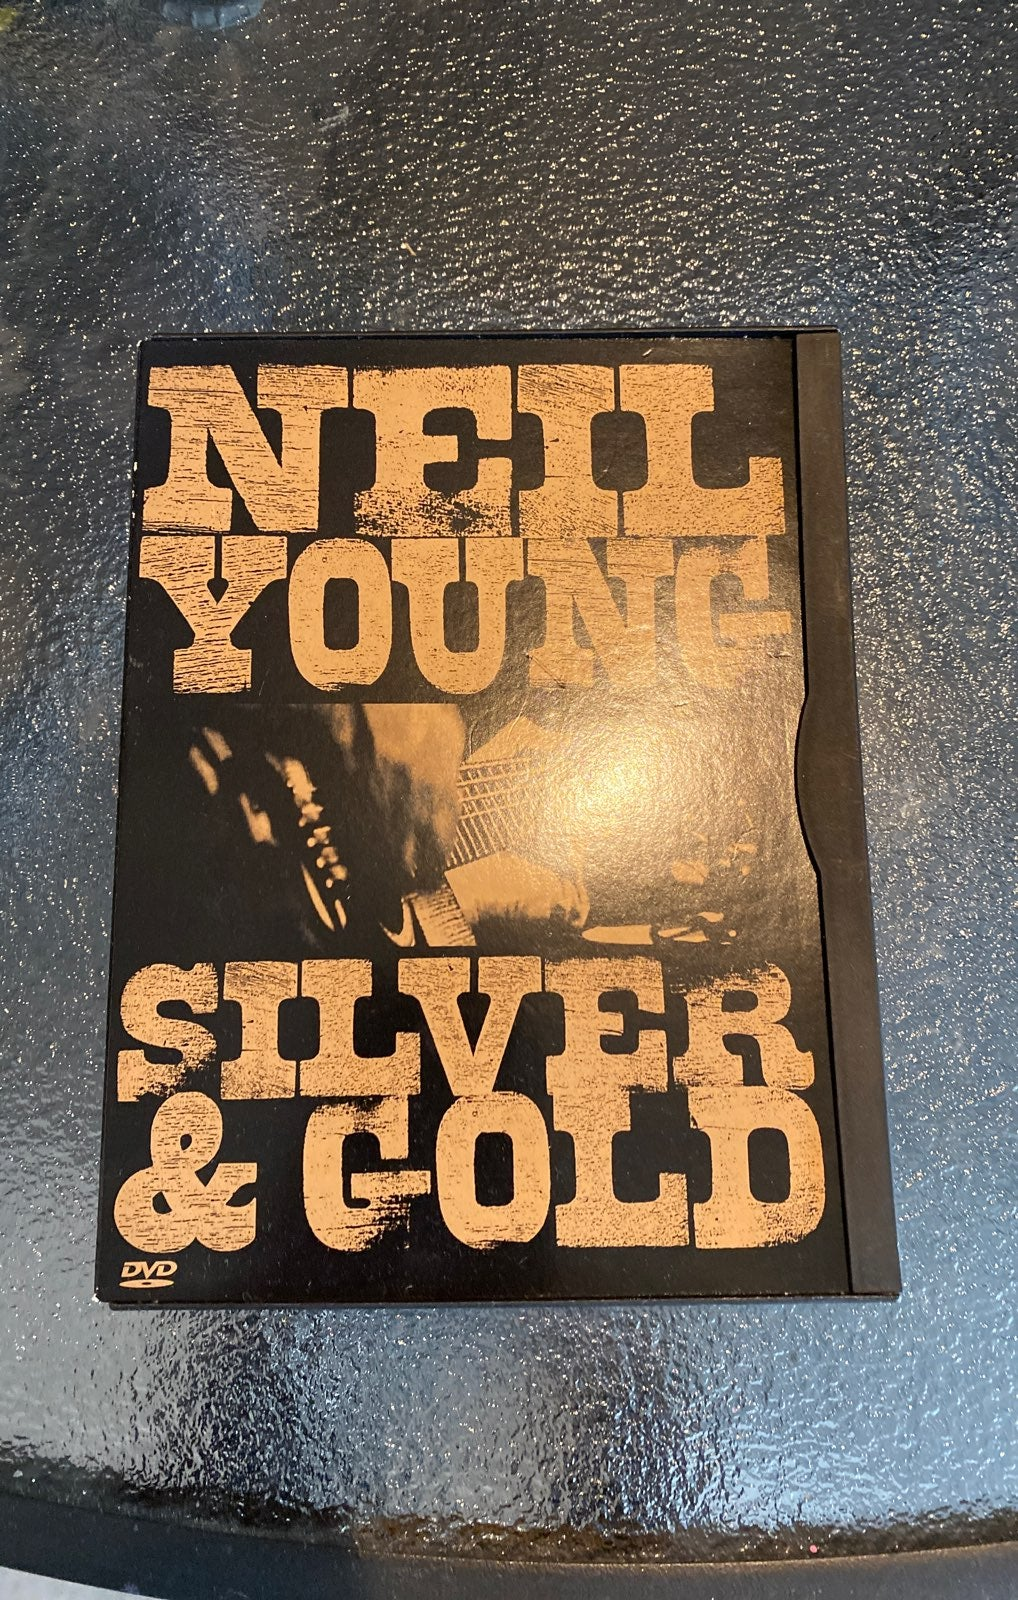 Neil young silver and gold DVD. EUC